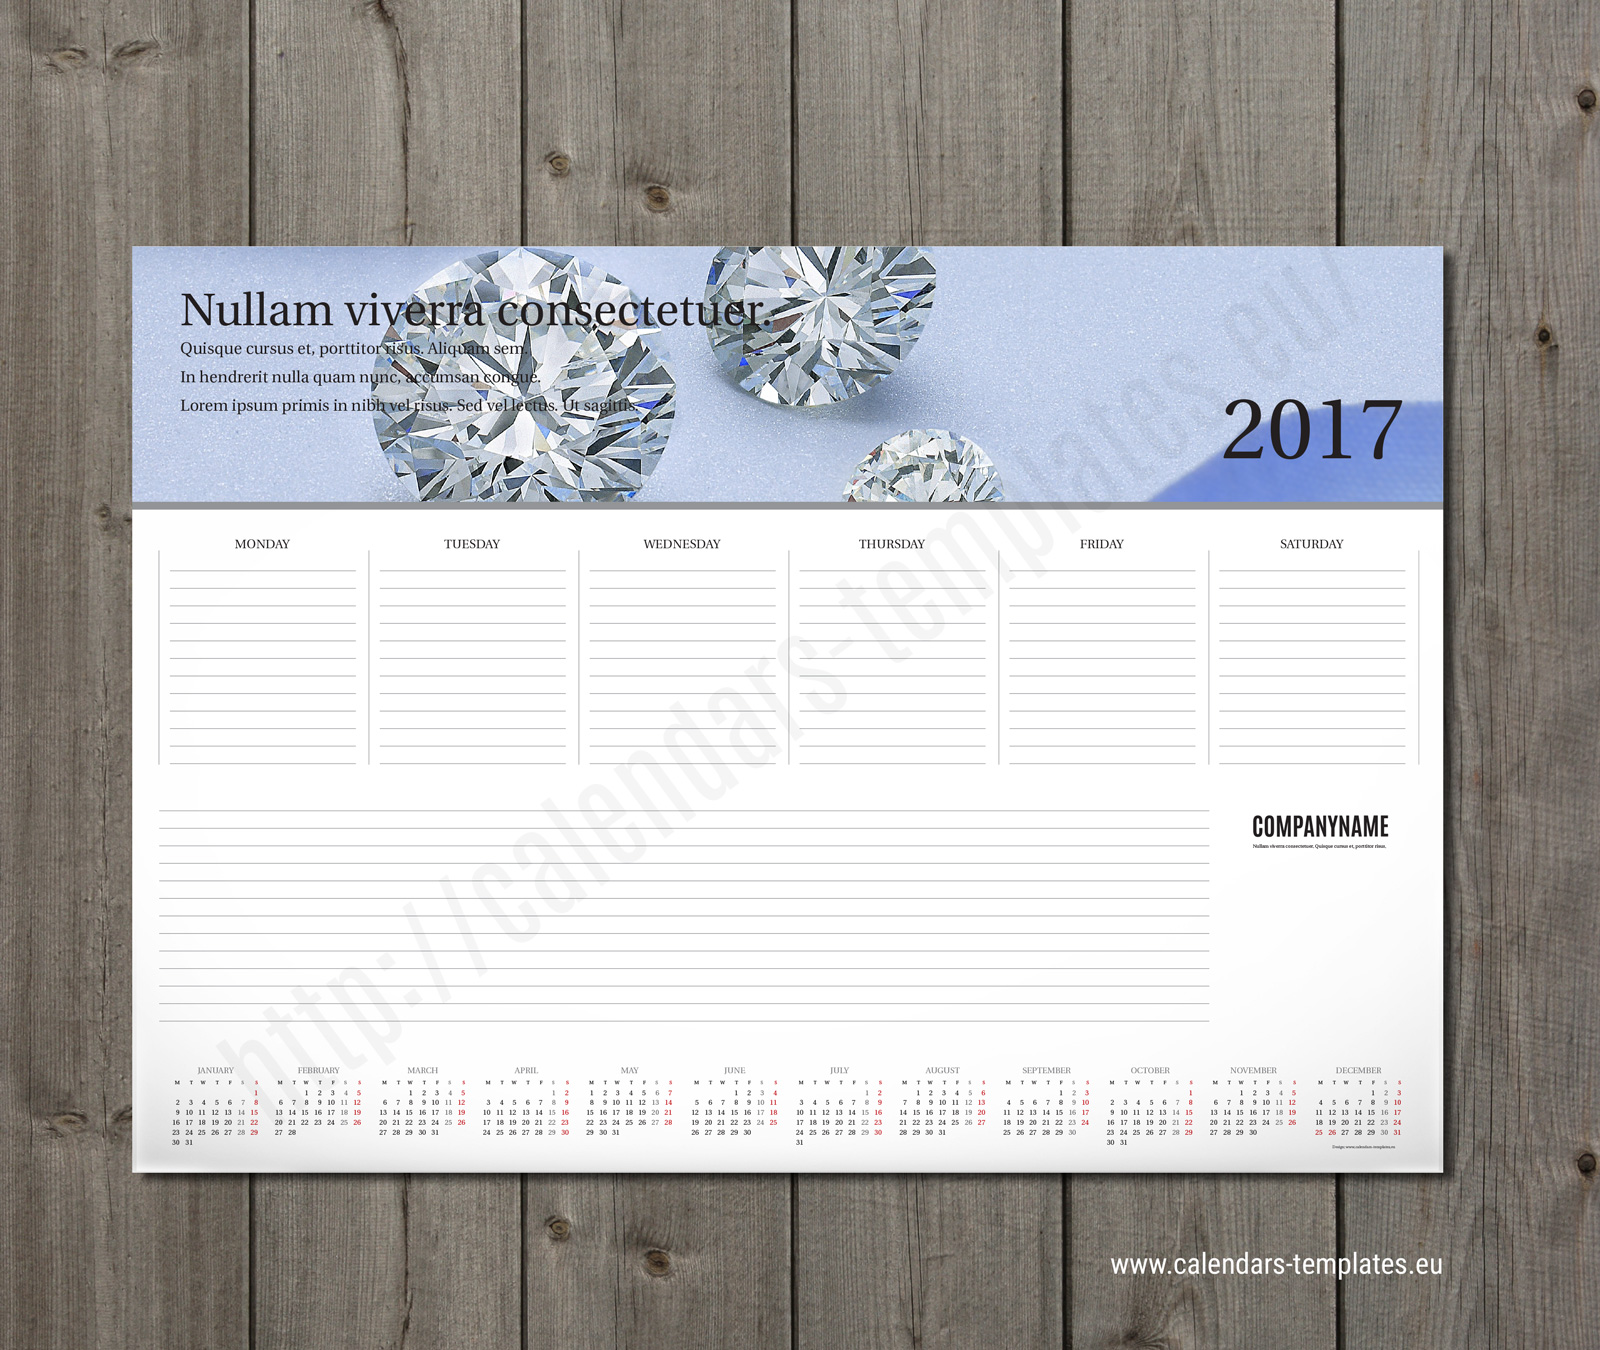 Weekly planner pad template 2018 with small yearly calendar and photo printable weekly planner pad maxwellsz